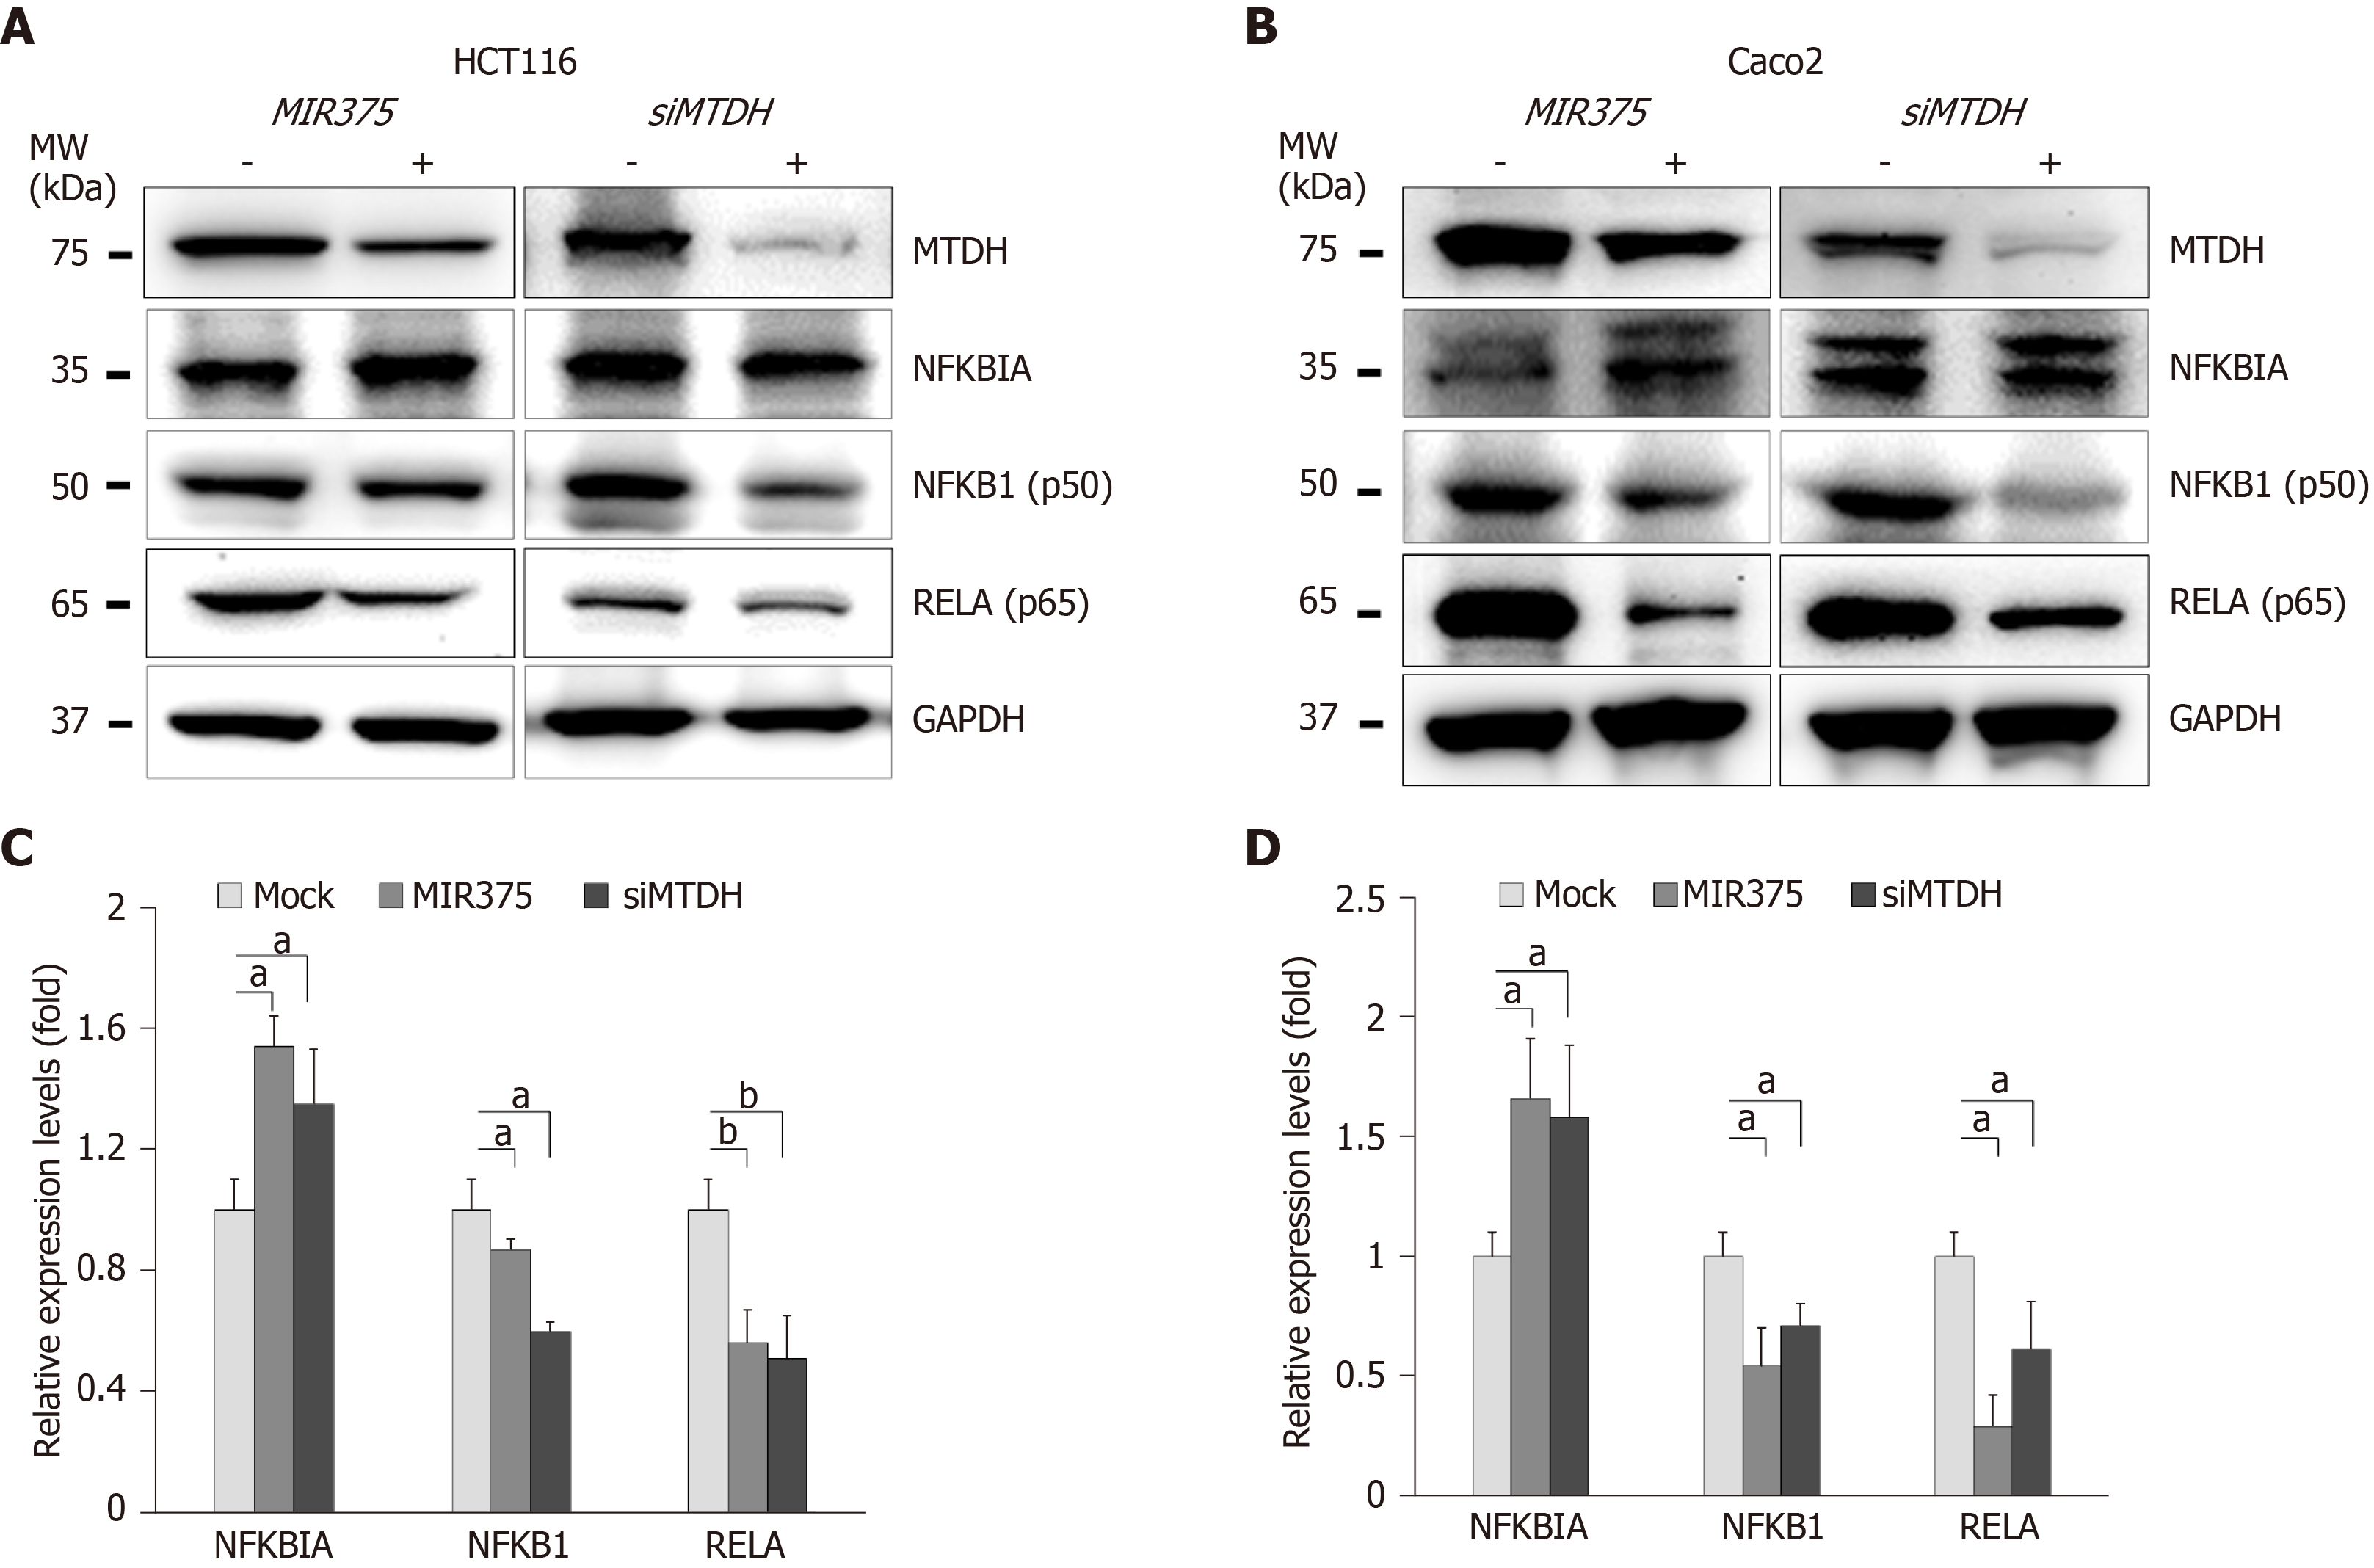 Reduced Microrna 375 In Colorectal Cancer Upregulates Metadherin Mediated Signaling